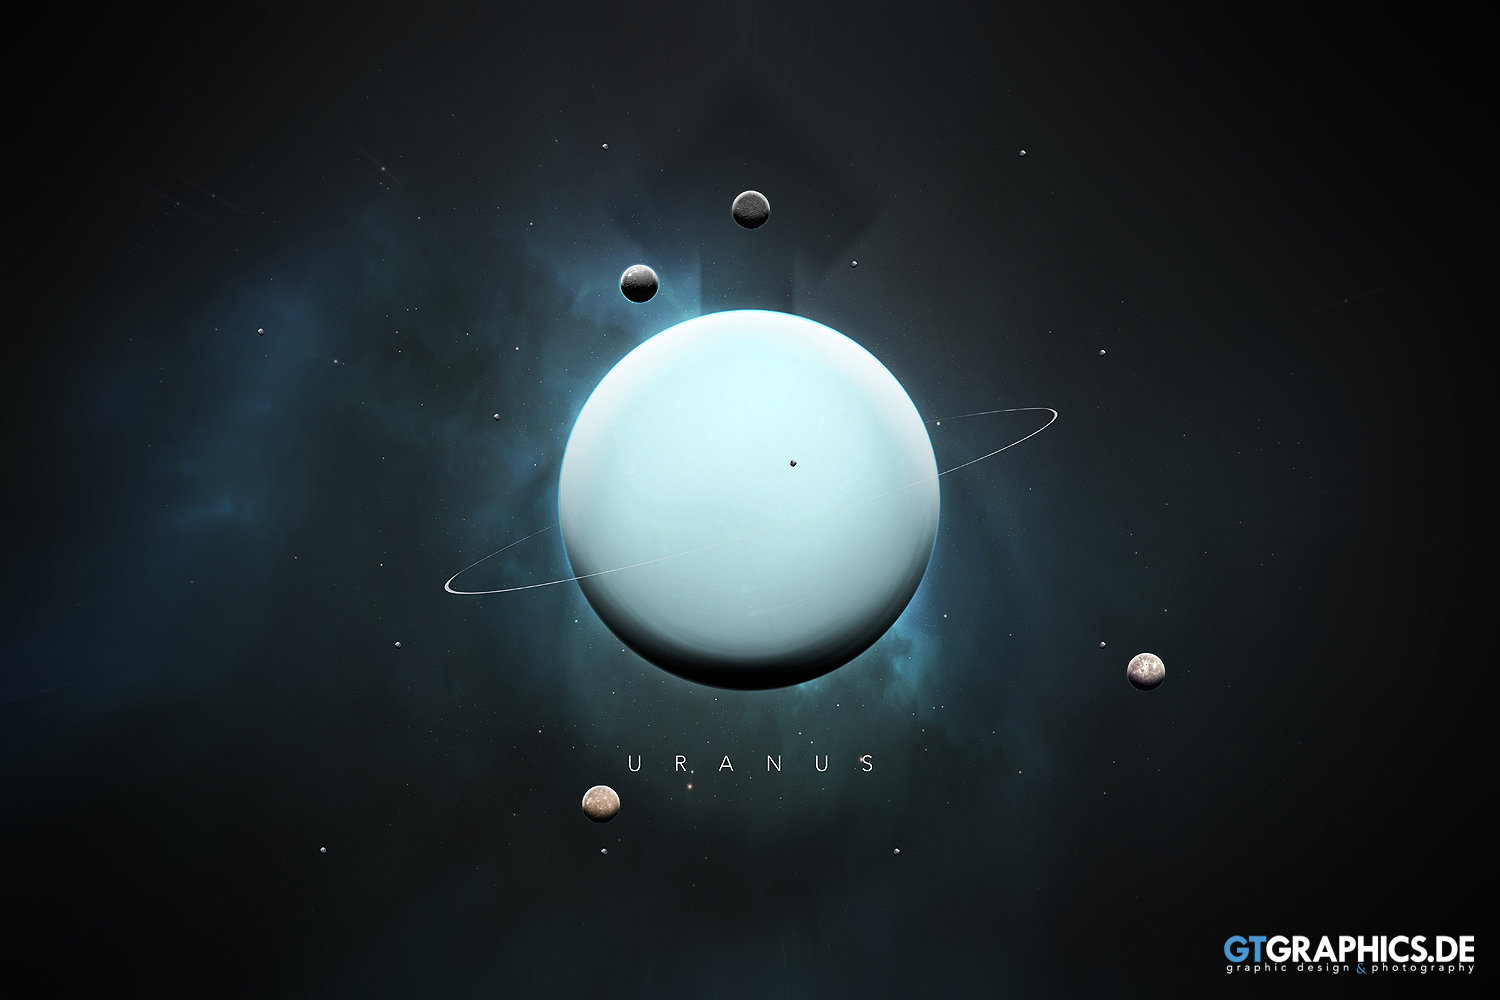 The Solar System Uranus